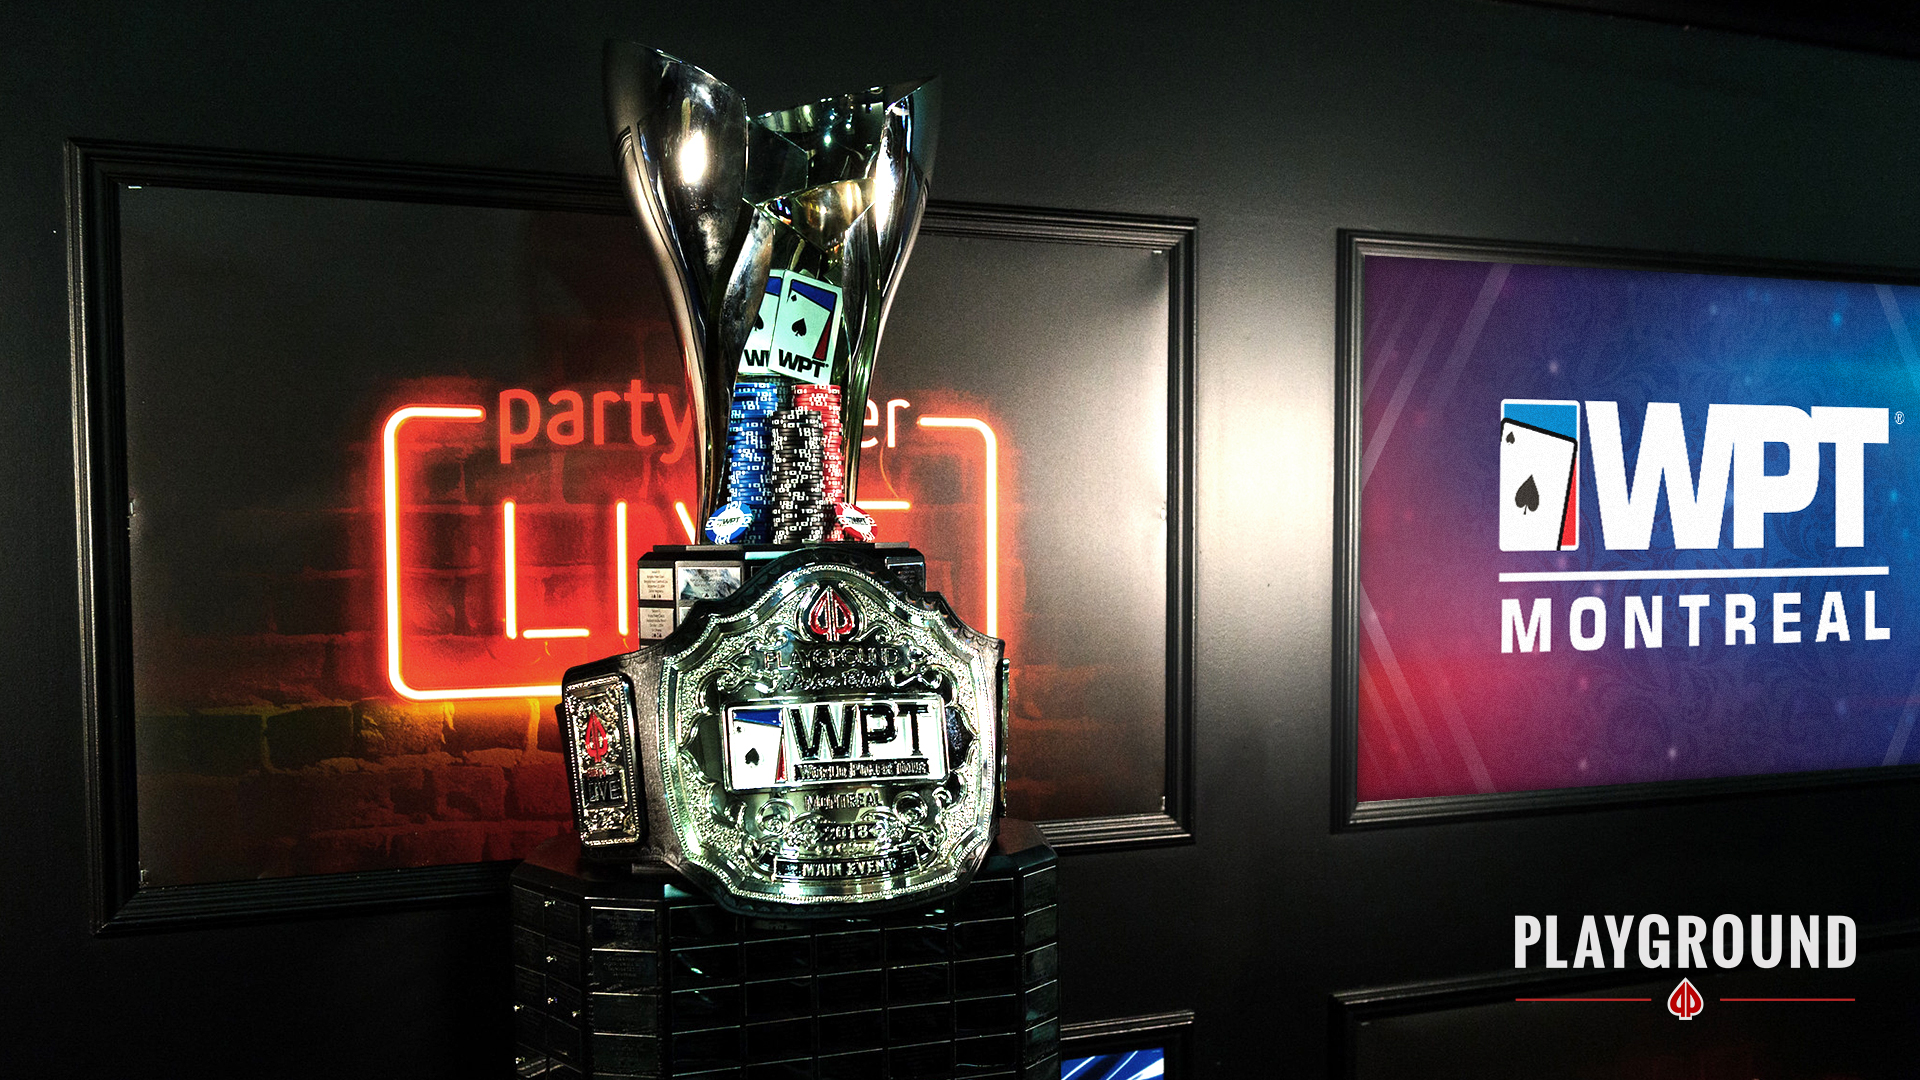 WPT Montreal – The Full Schedule